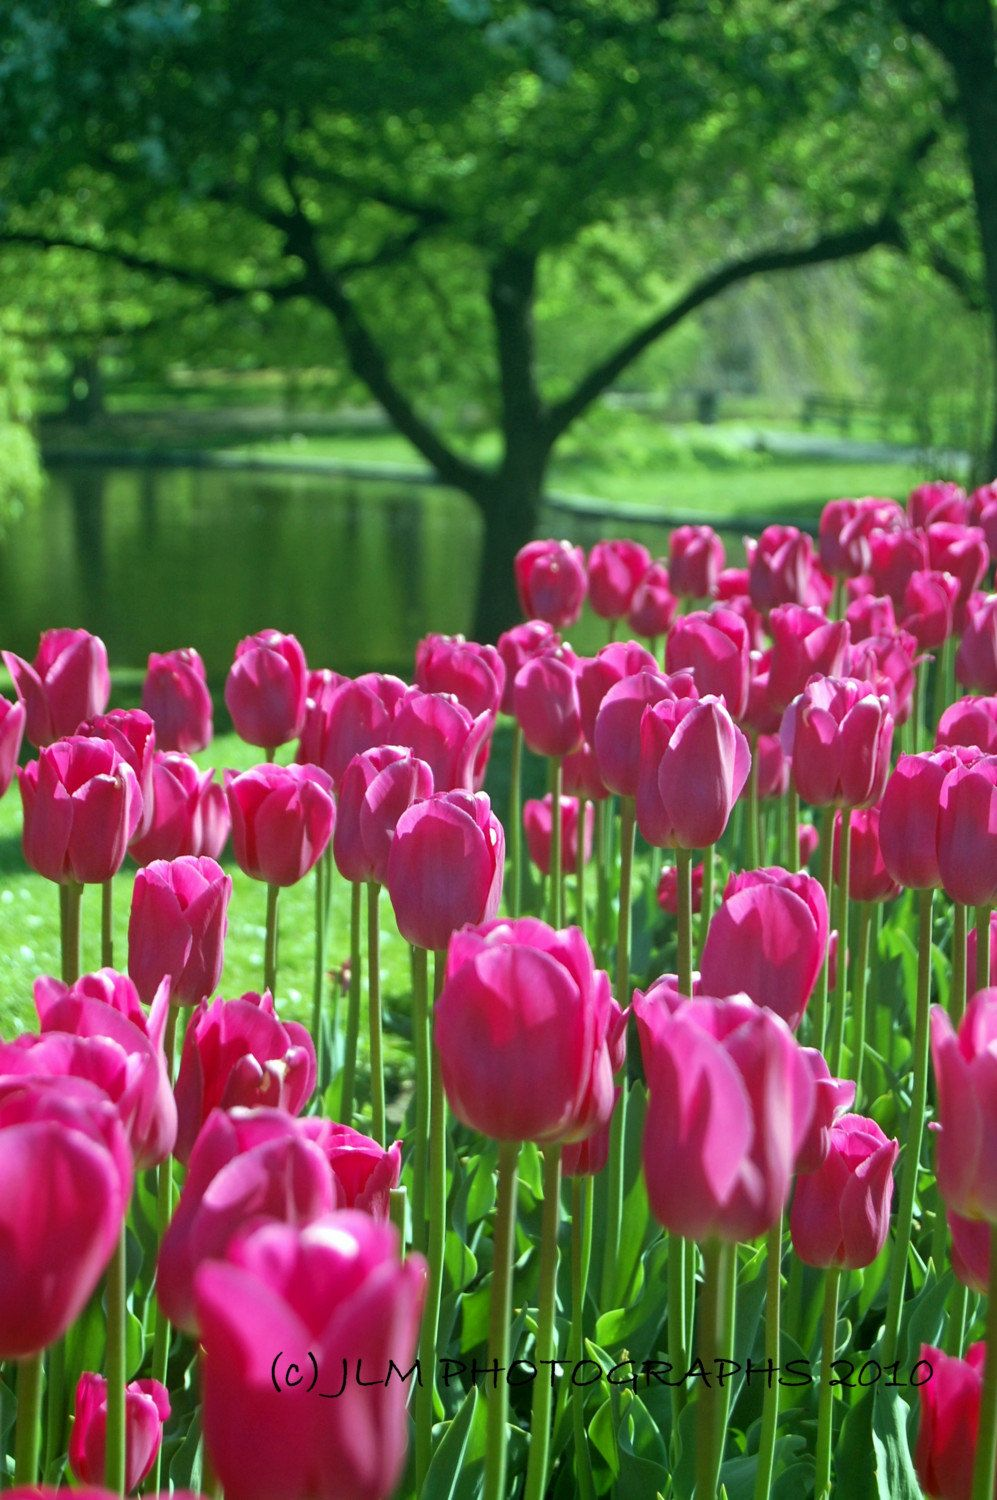 Boston Art Tulips Photo Print Home Office Decor Flower Etsy Pink Tulips Flower Pictures Flowers Photography